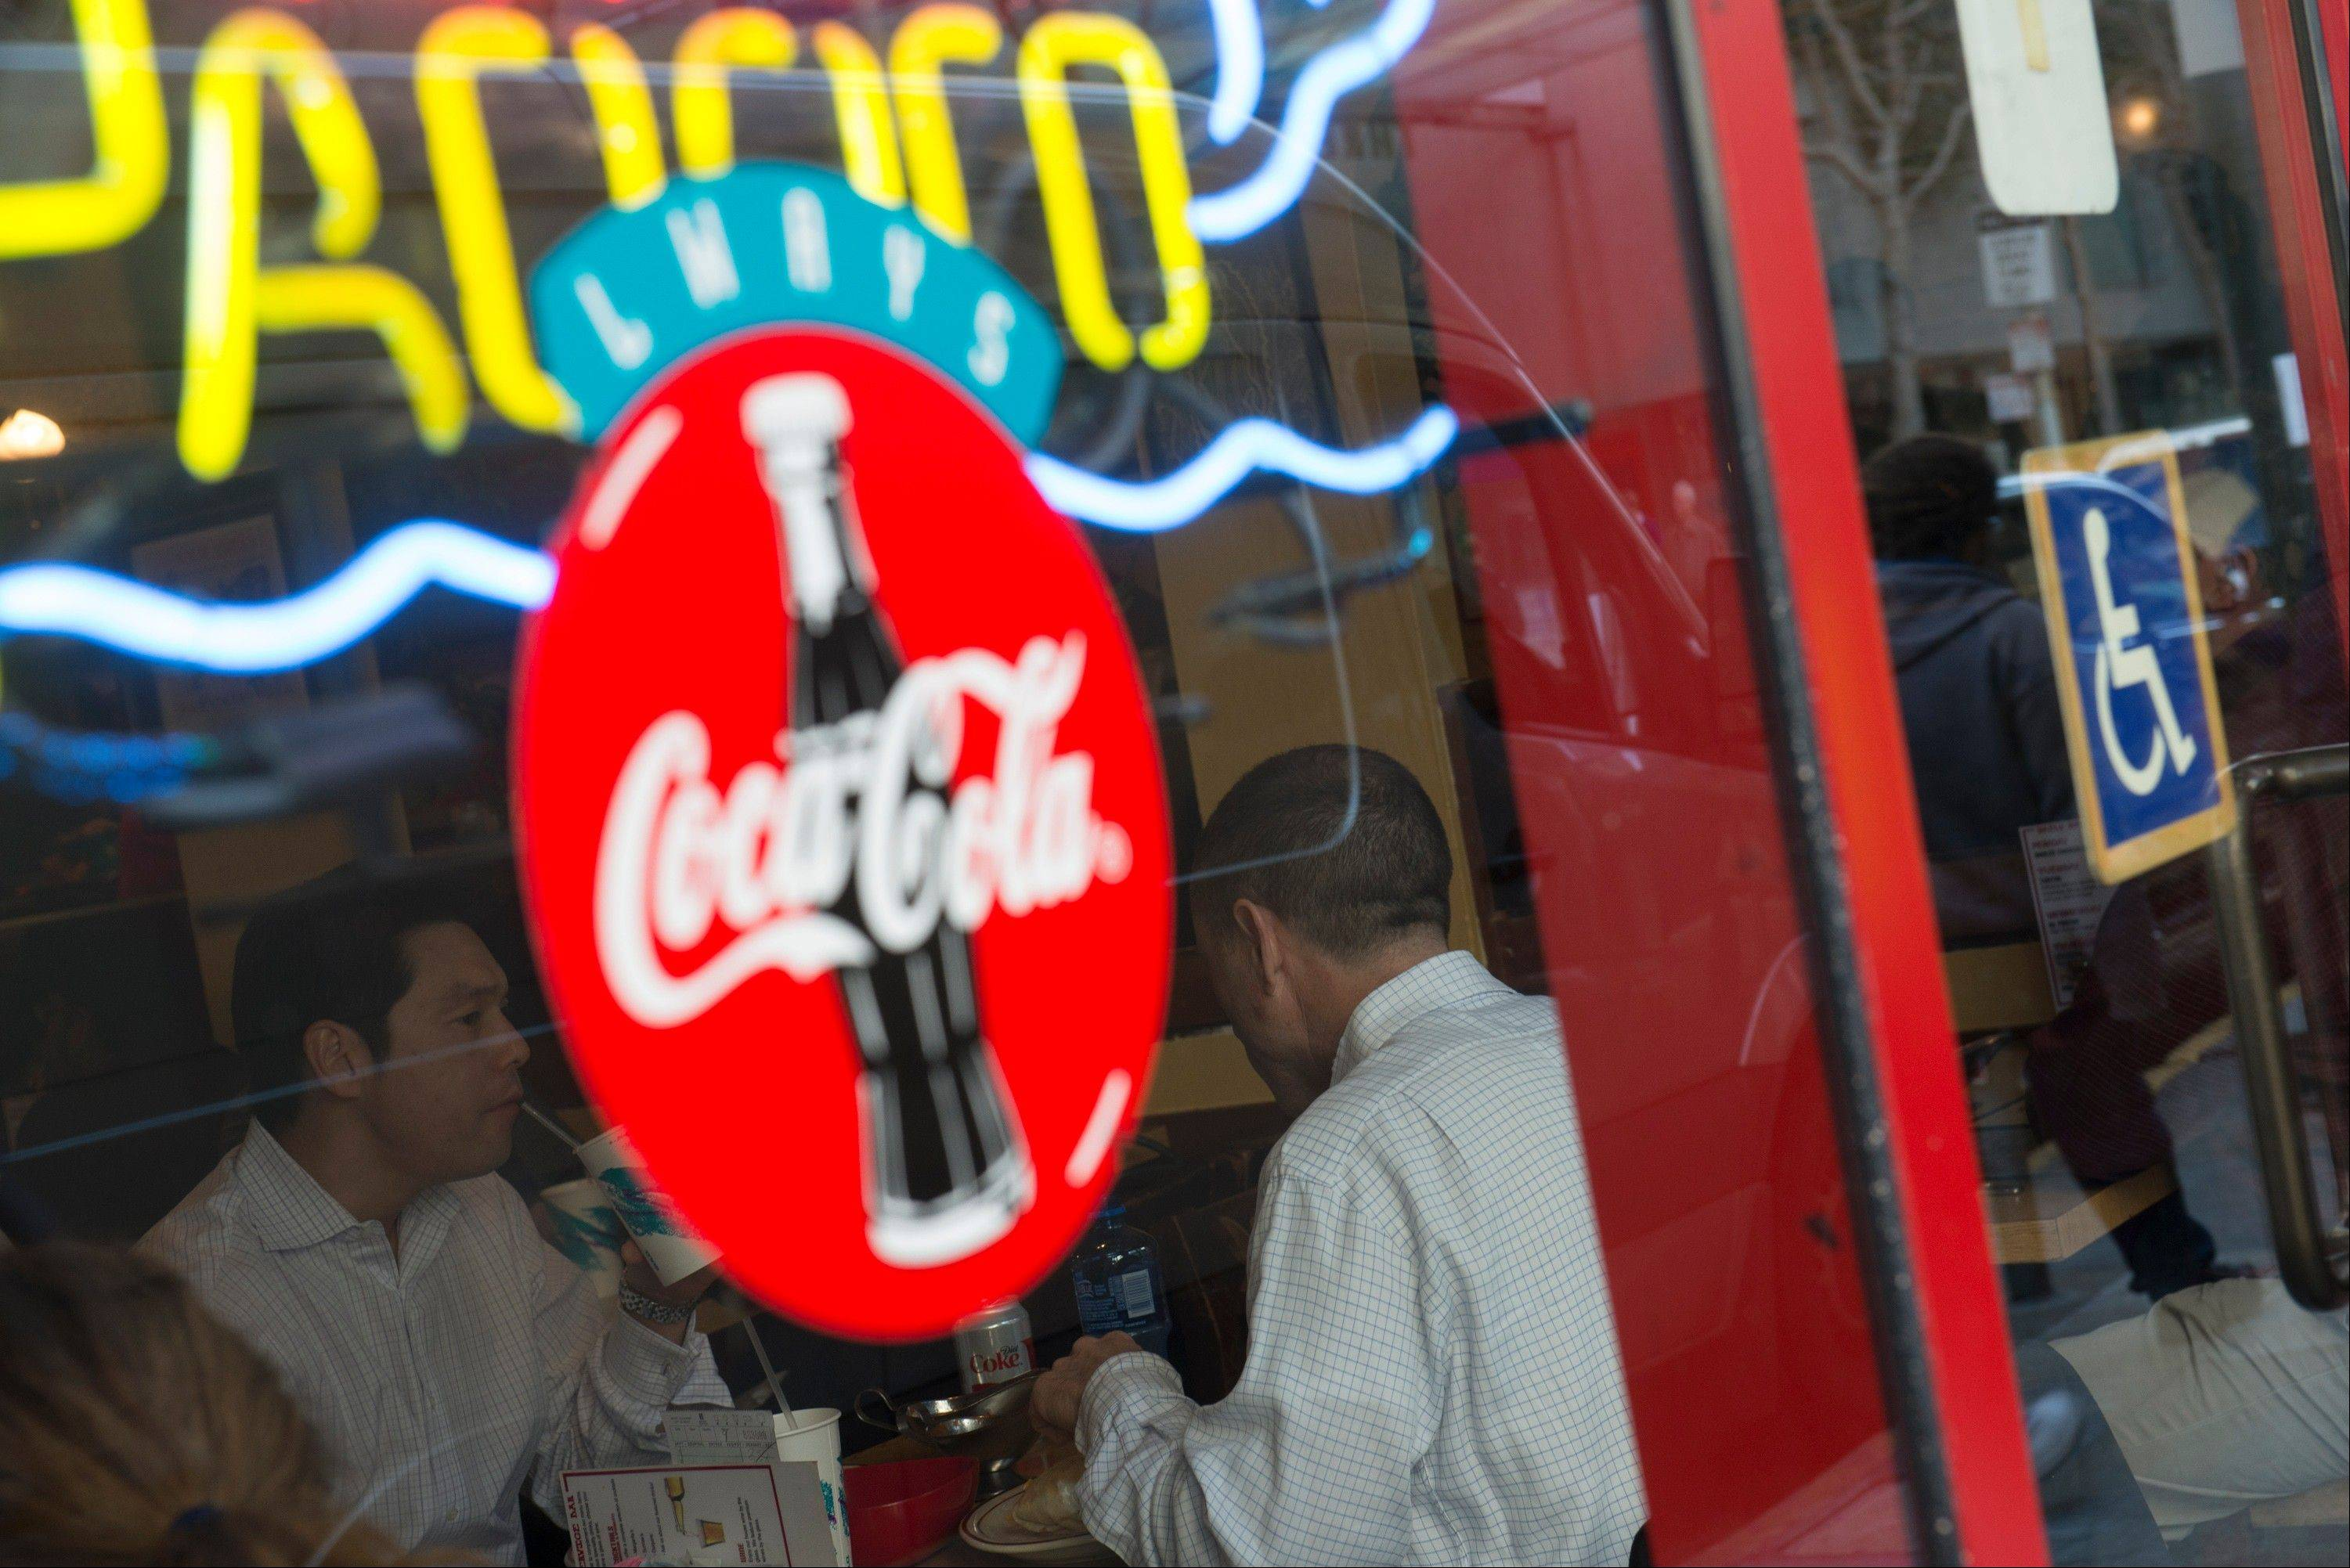 Coca-Cola Co. signage is displayed the window of a restaurant as patrons dine in San Francisco.